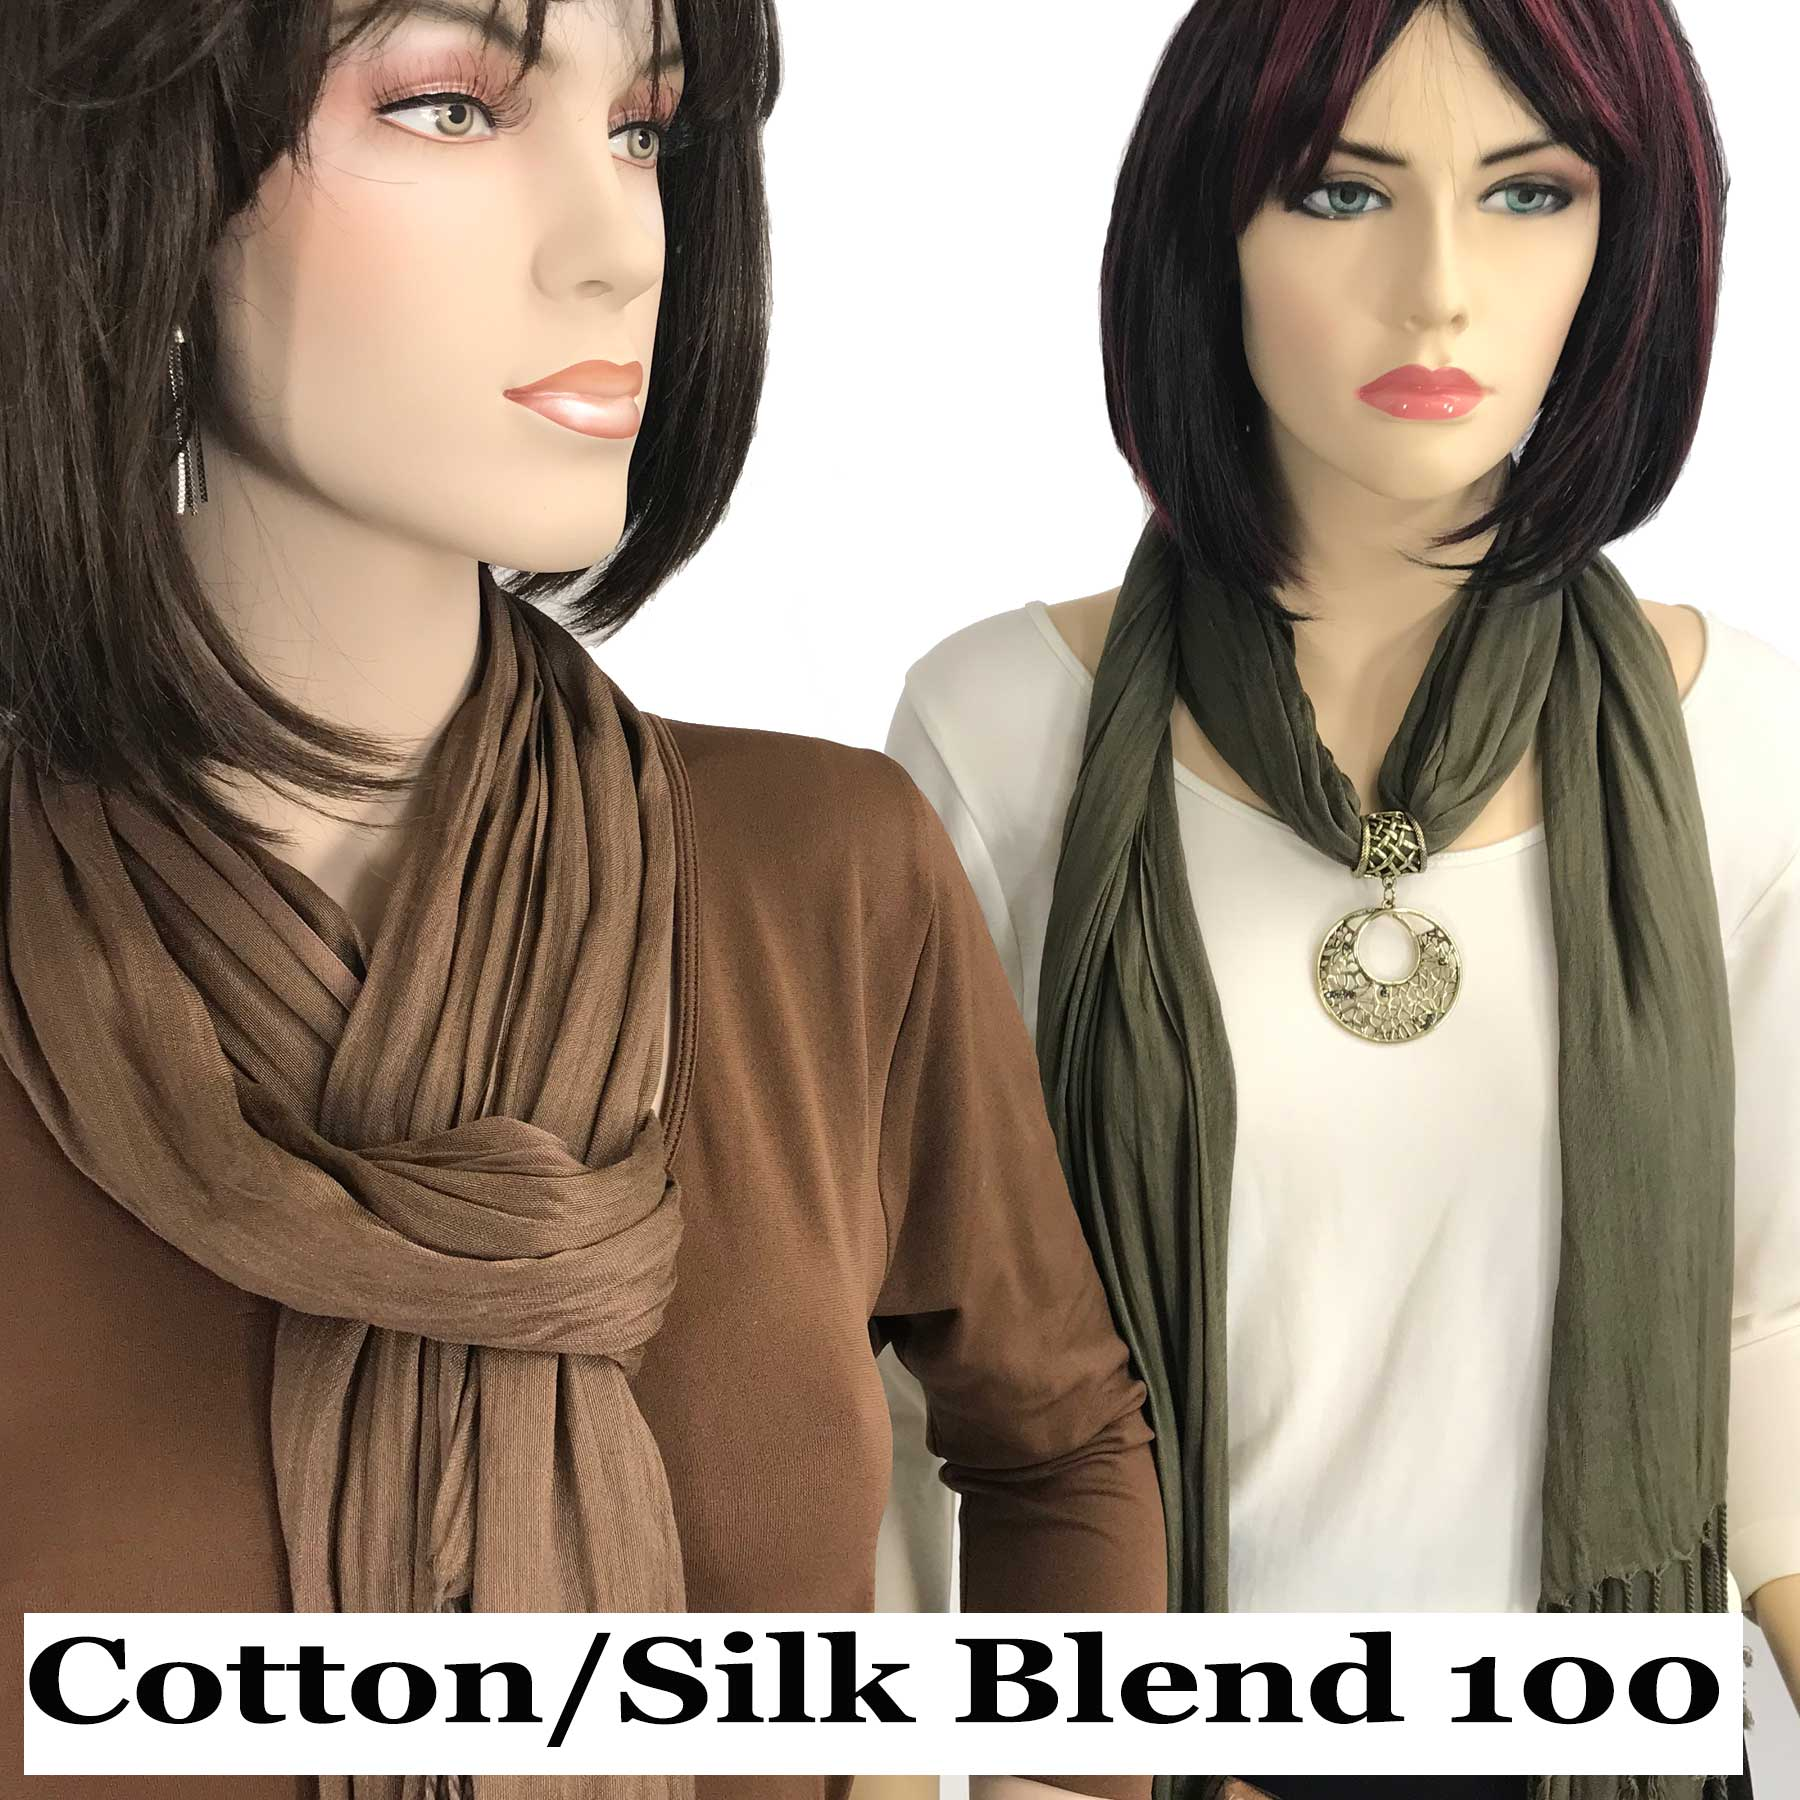 Oblong Scarves - Cotton/Silk Blend 100